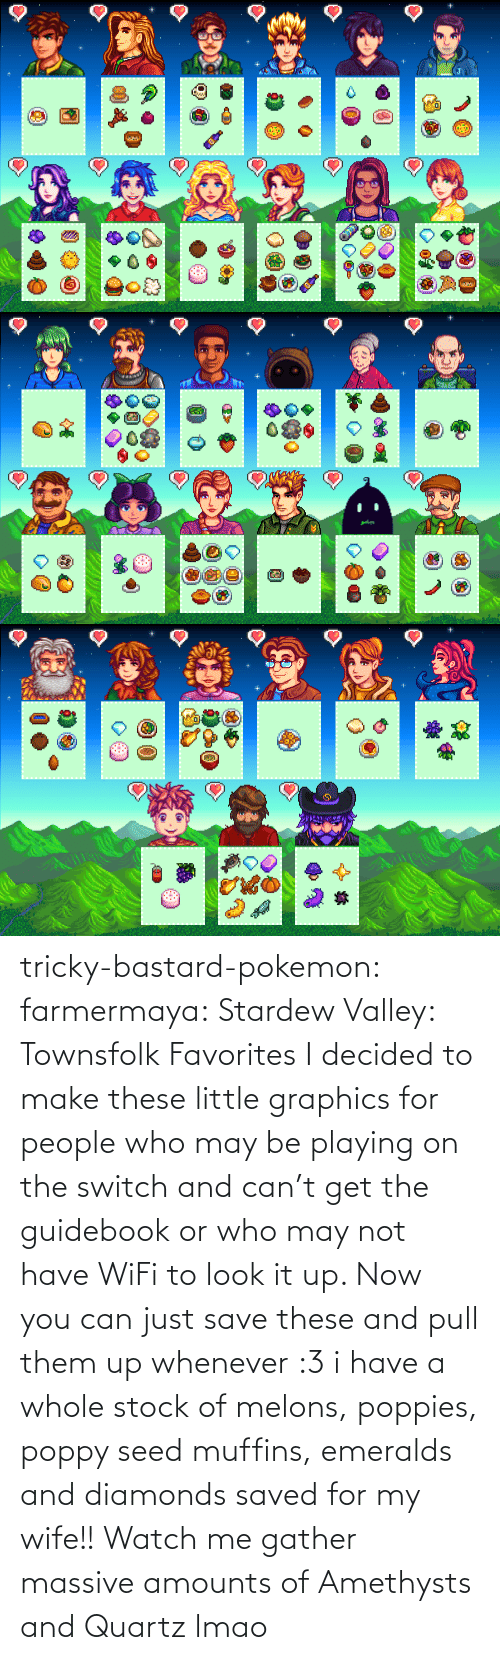 Lmao, Pokemon, and Tumblr: tricky-bastard-pokemon:  farmermaya: Stardew Valley: Townsfolk Favorites  I decided to make these little graphics for people who may be playing on the switch and can't get the guidebook or who may not have WiFi to look it up. Now you can just save these and pull them up whenever :3   i have a whole stock of melons, poppies, poppy seed muffins, emeralds and diamonds saved for my wife!!    Watch me gather massive amounts of Amethysts and Quartz lmao